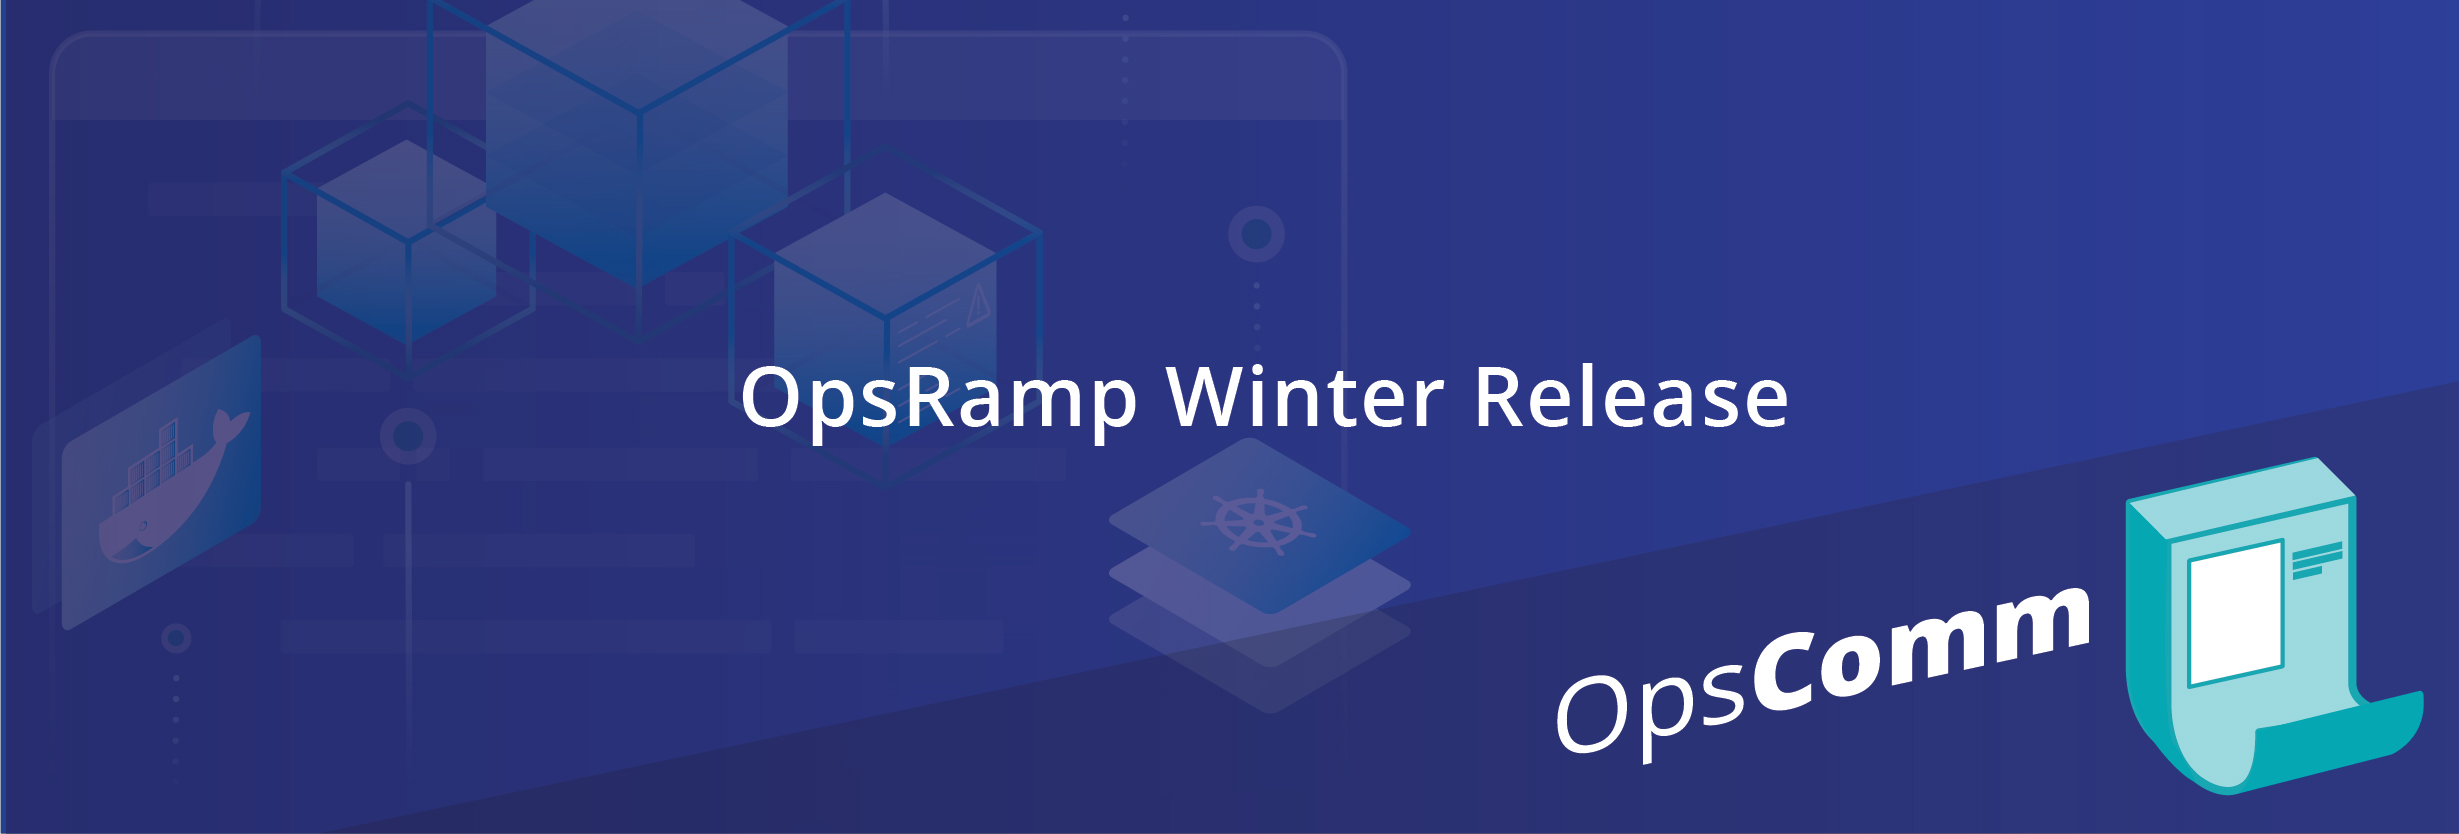 OpsComm January: OpsRamp Winter Release Introduces New Capabilities for AIOps, Cloud Native Operations, and Service-Centric IT Management